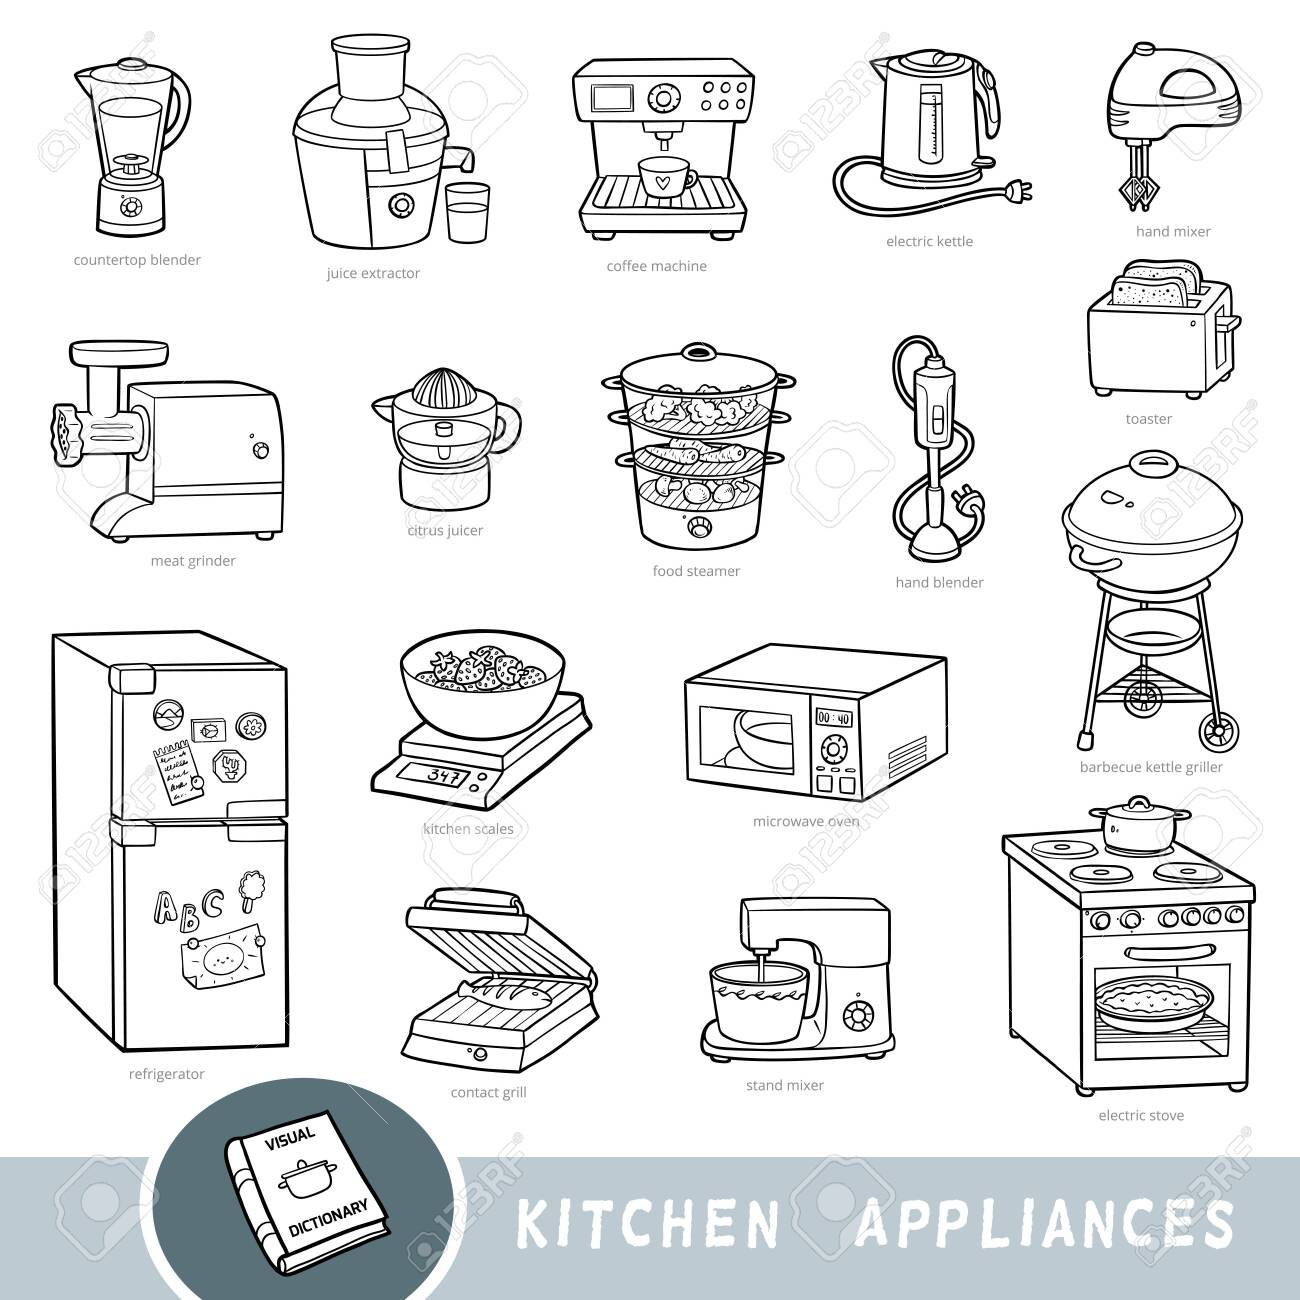 Black And White Set Of Kitchen Appliances Collection Vector Royalty Free Cliparts Vectors Stock Illustration Image 133107507